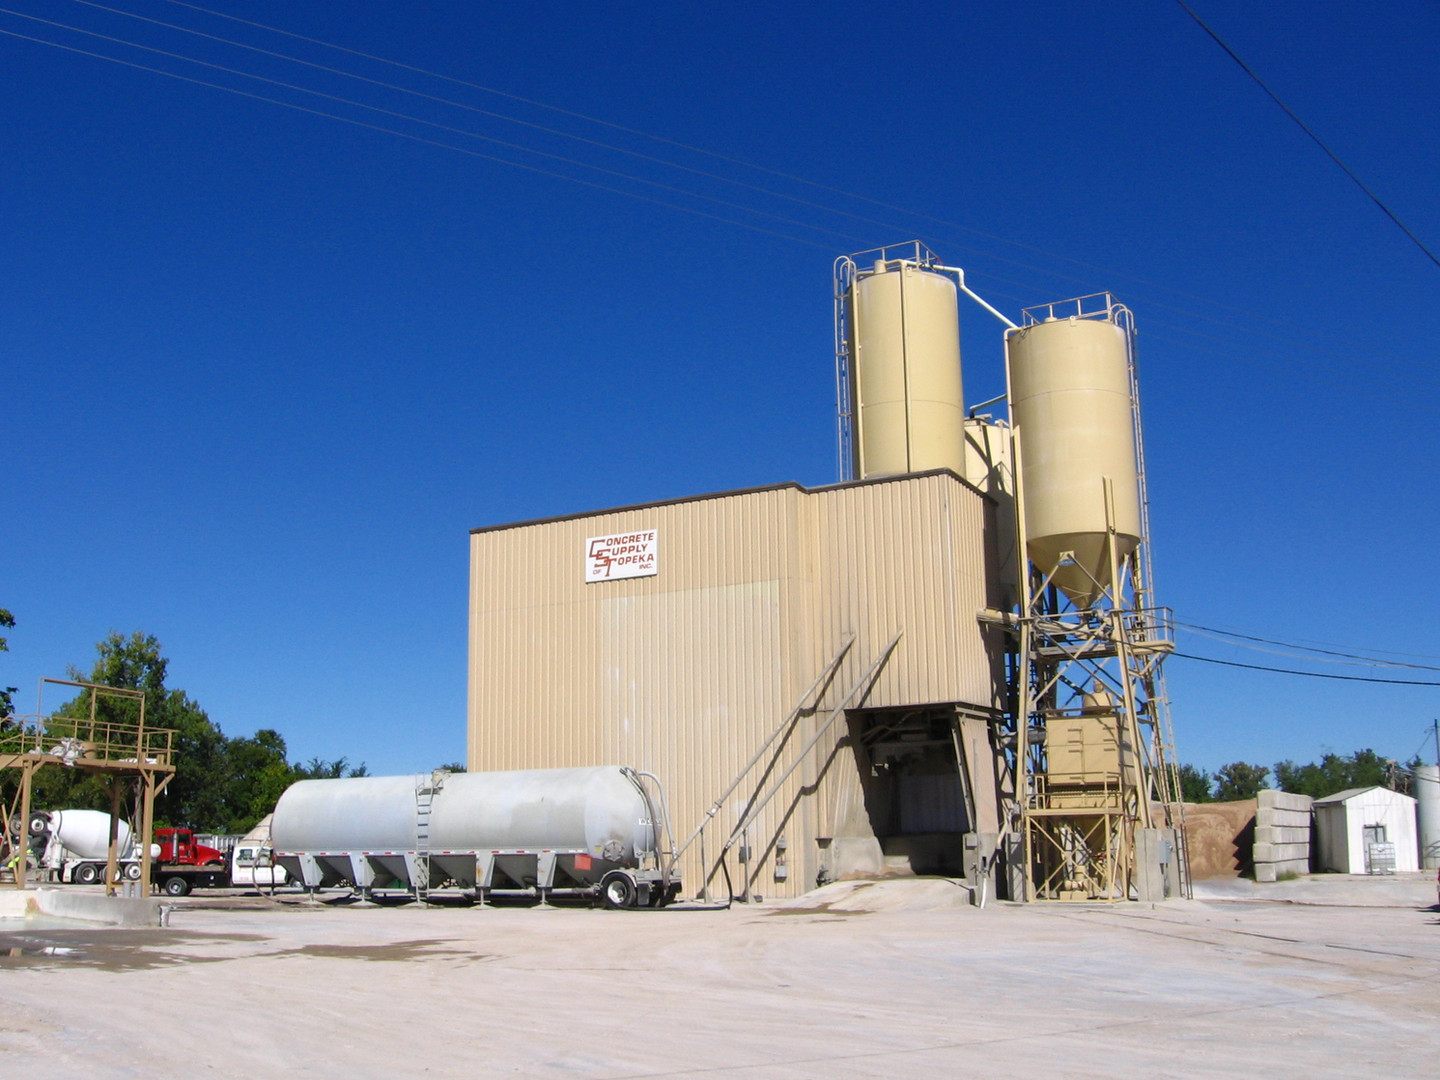 Concrete Supply of Topeka